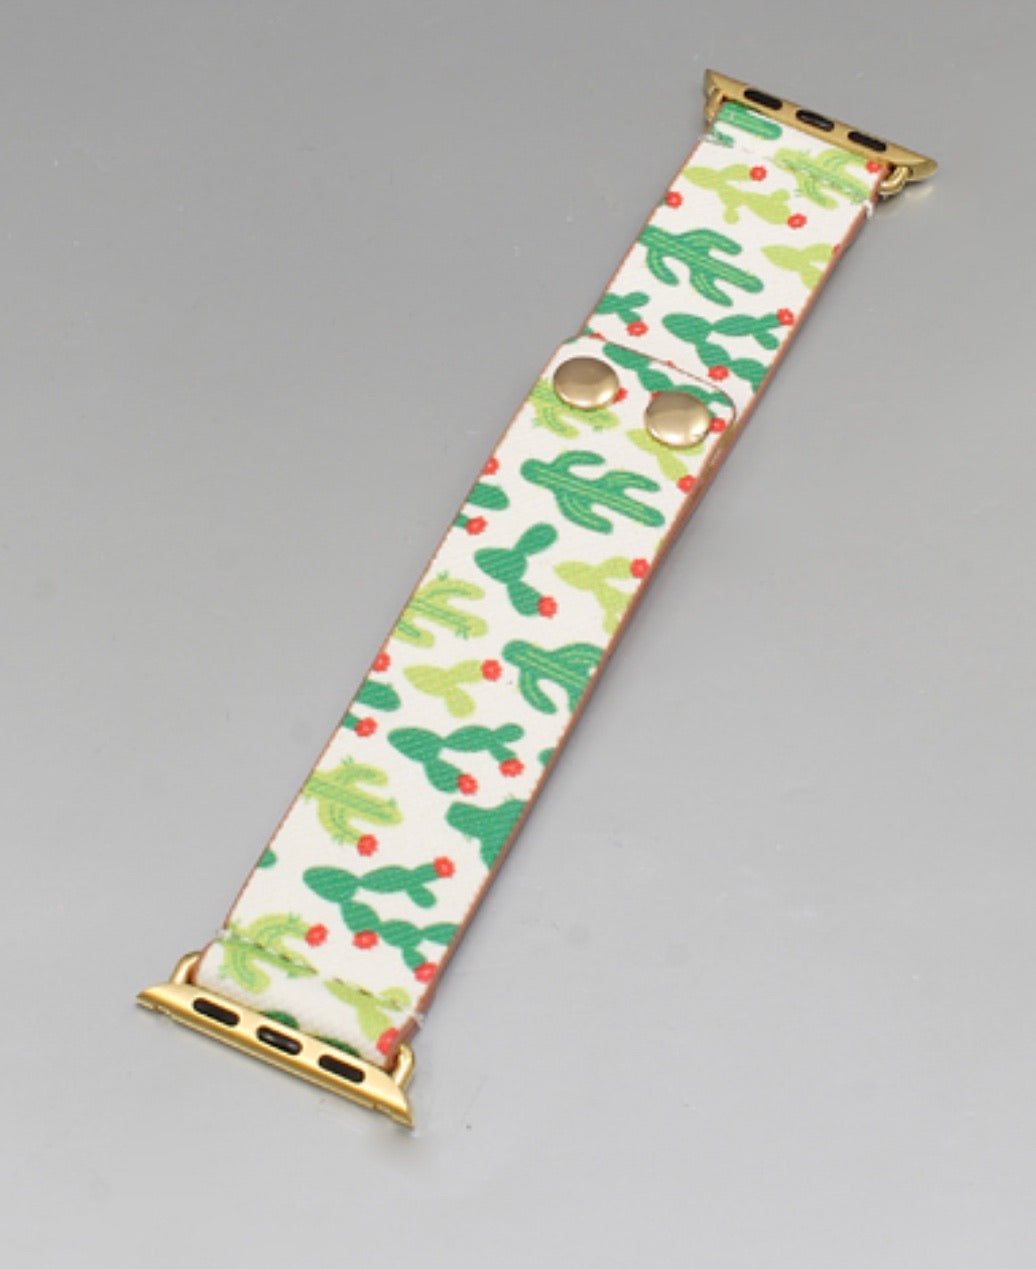 38mm Cactus Apple Watch Band